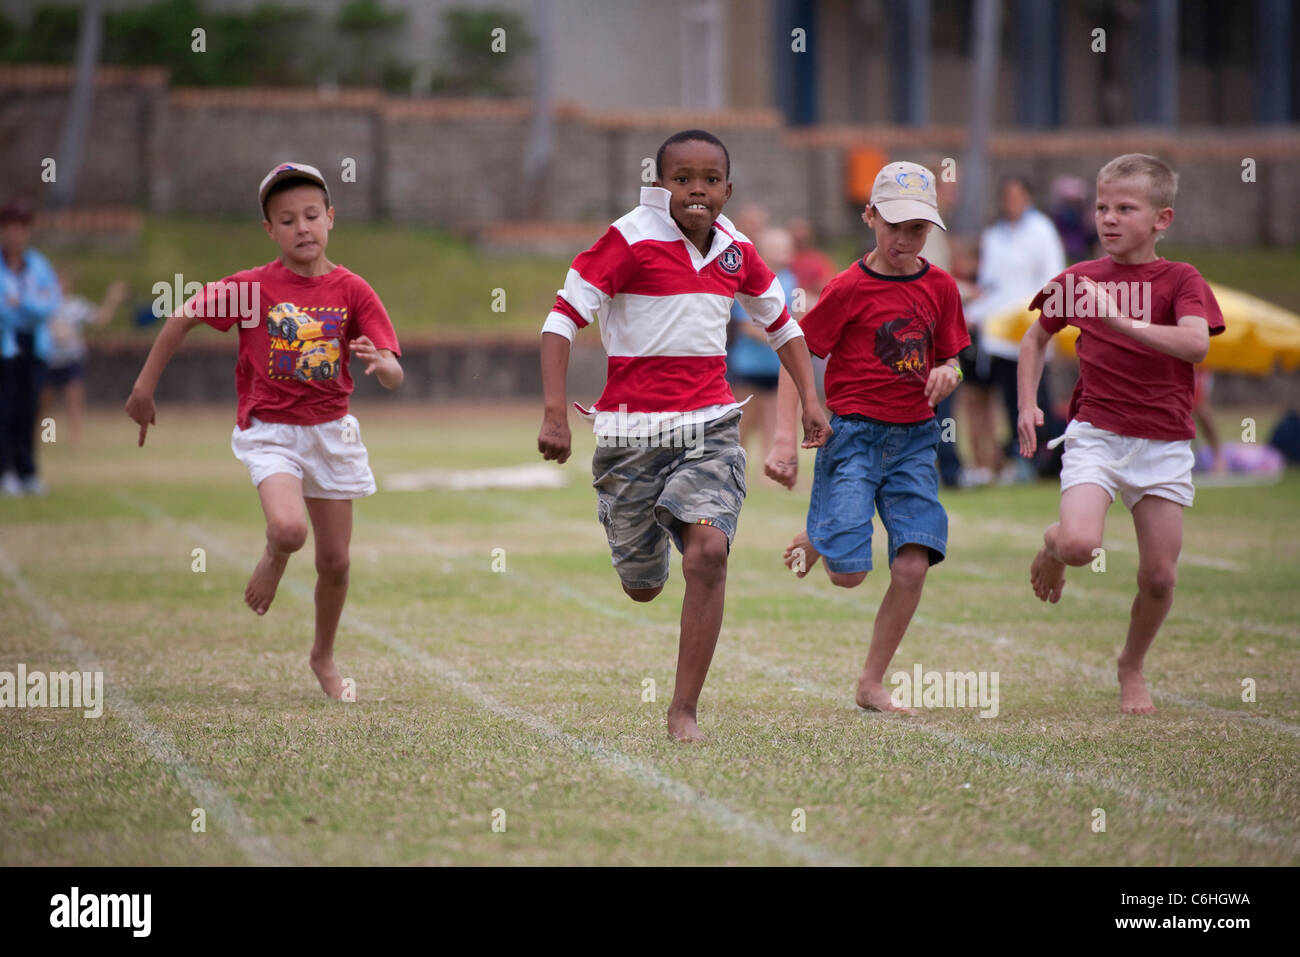 Primary school children running in inter-house athletics race - Stock Image